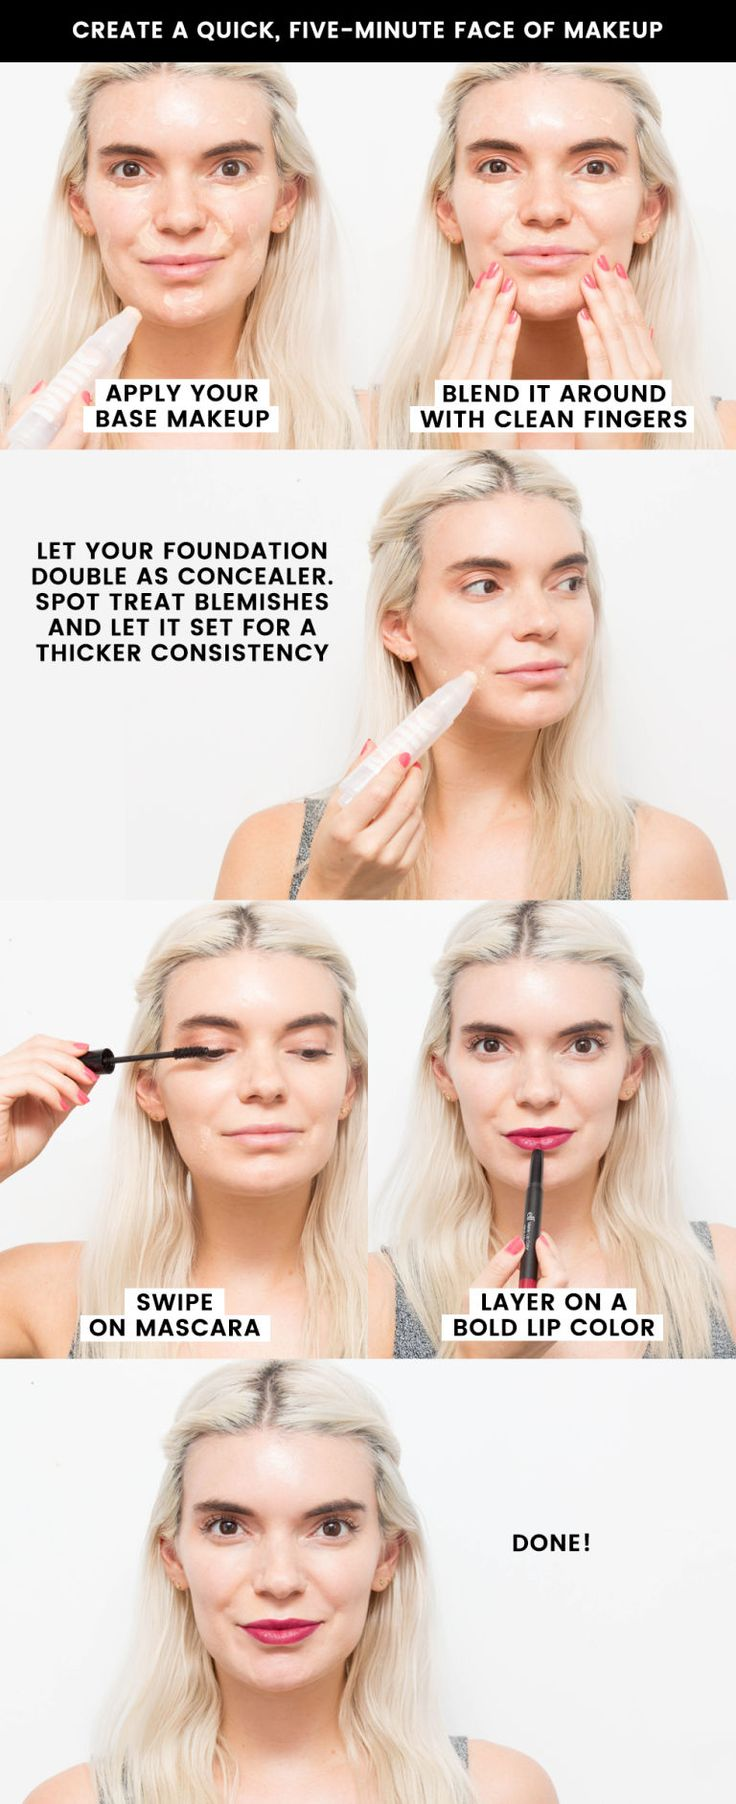 22 quick, time-saving beauty tricks you should know: